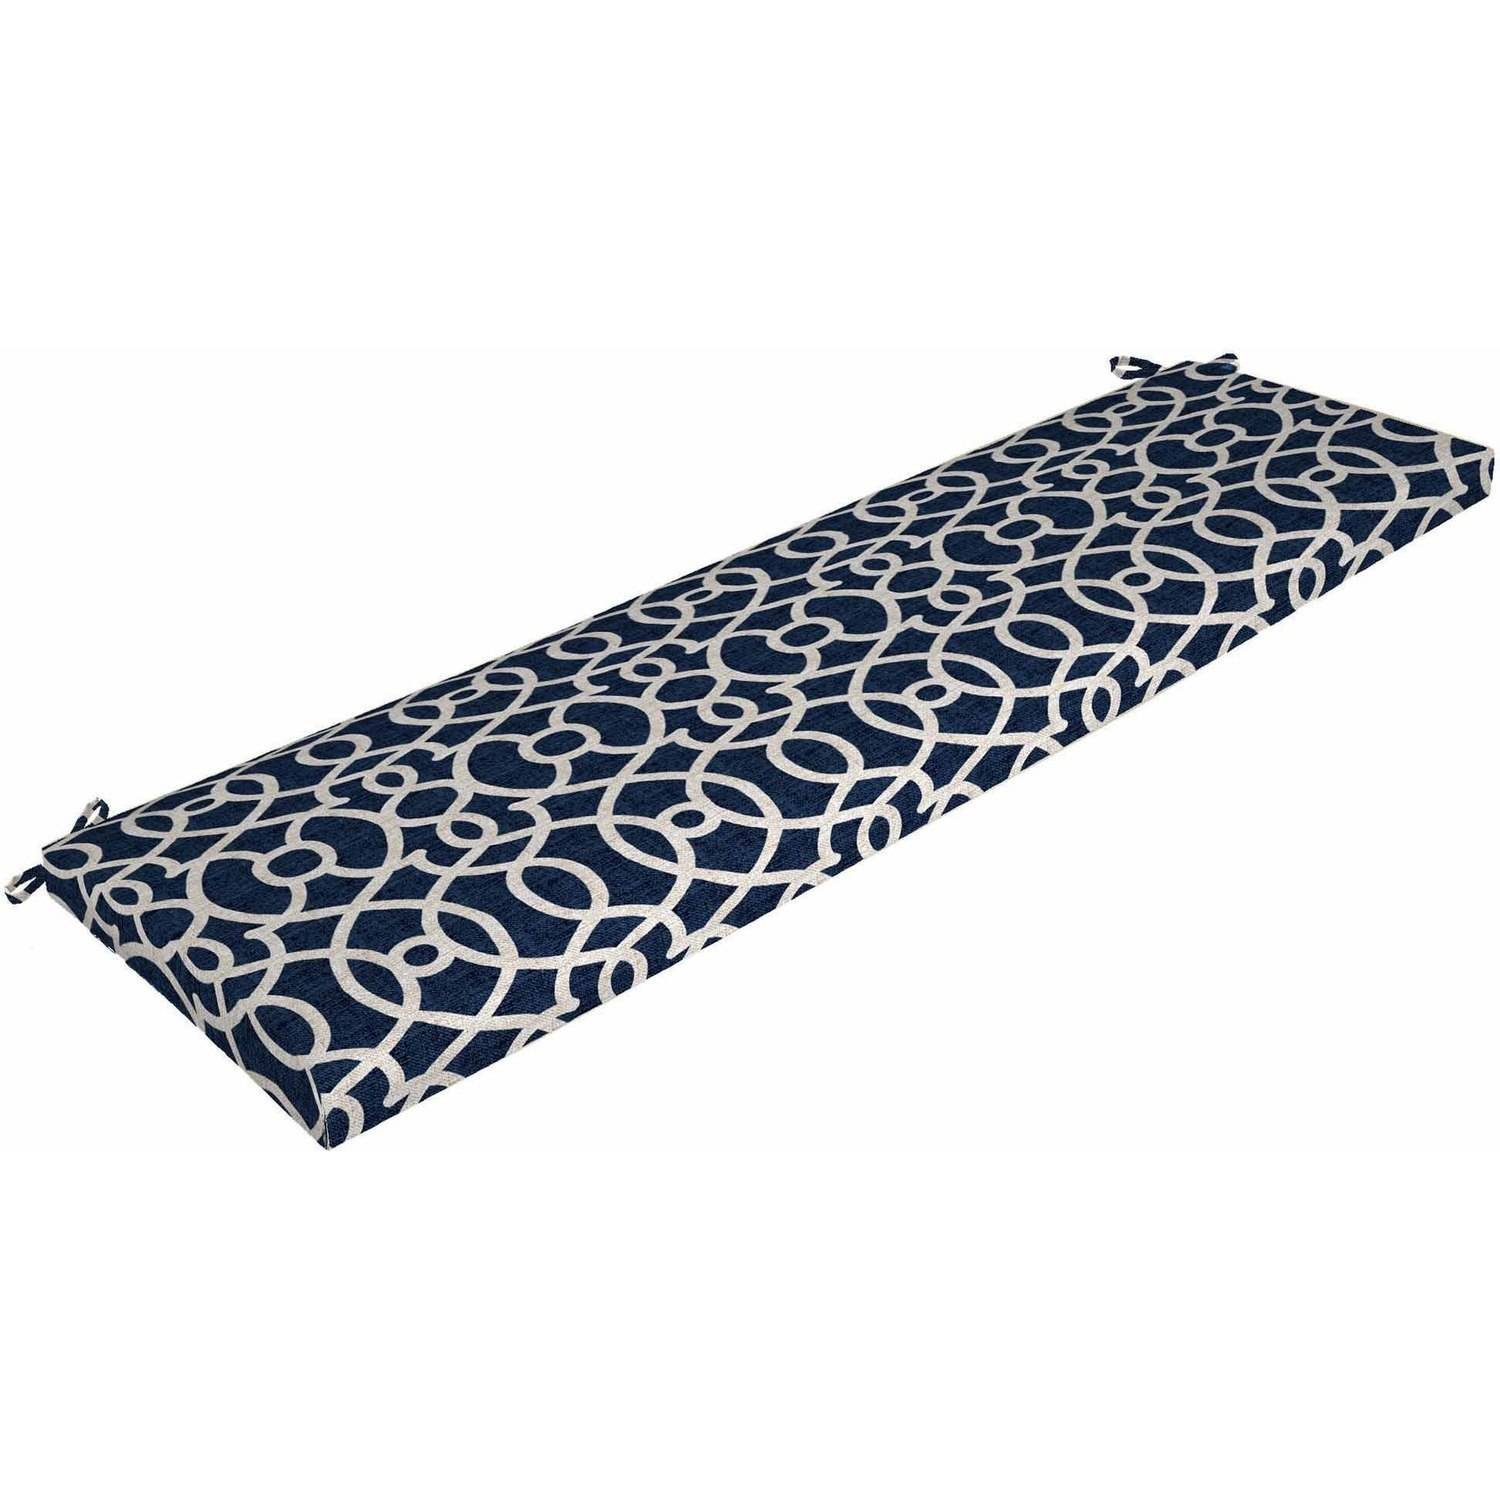 Mainstays Outdoor Patio Bench Cushion Multiple Patterns